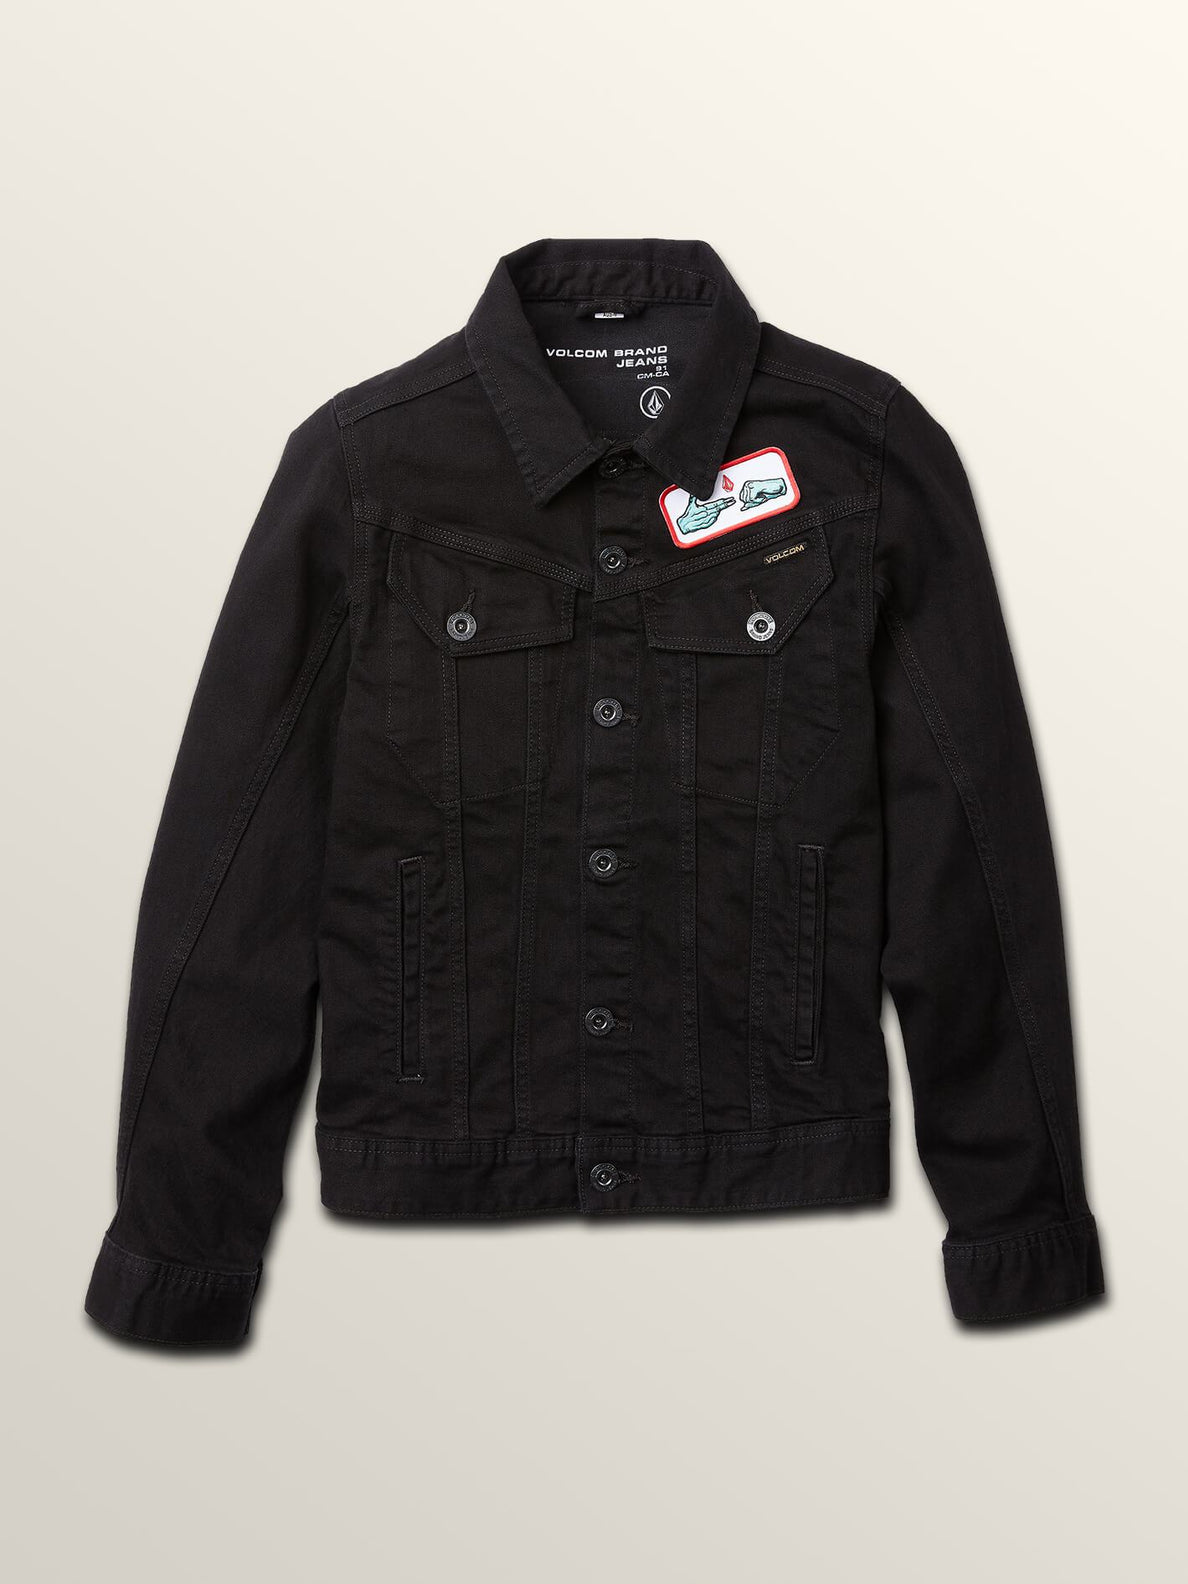 Run The Jewels Legend Has It Denim Jacket In Black, Front View